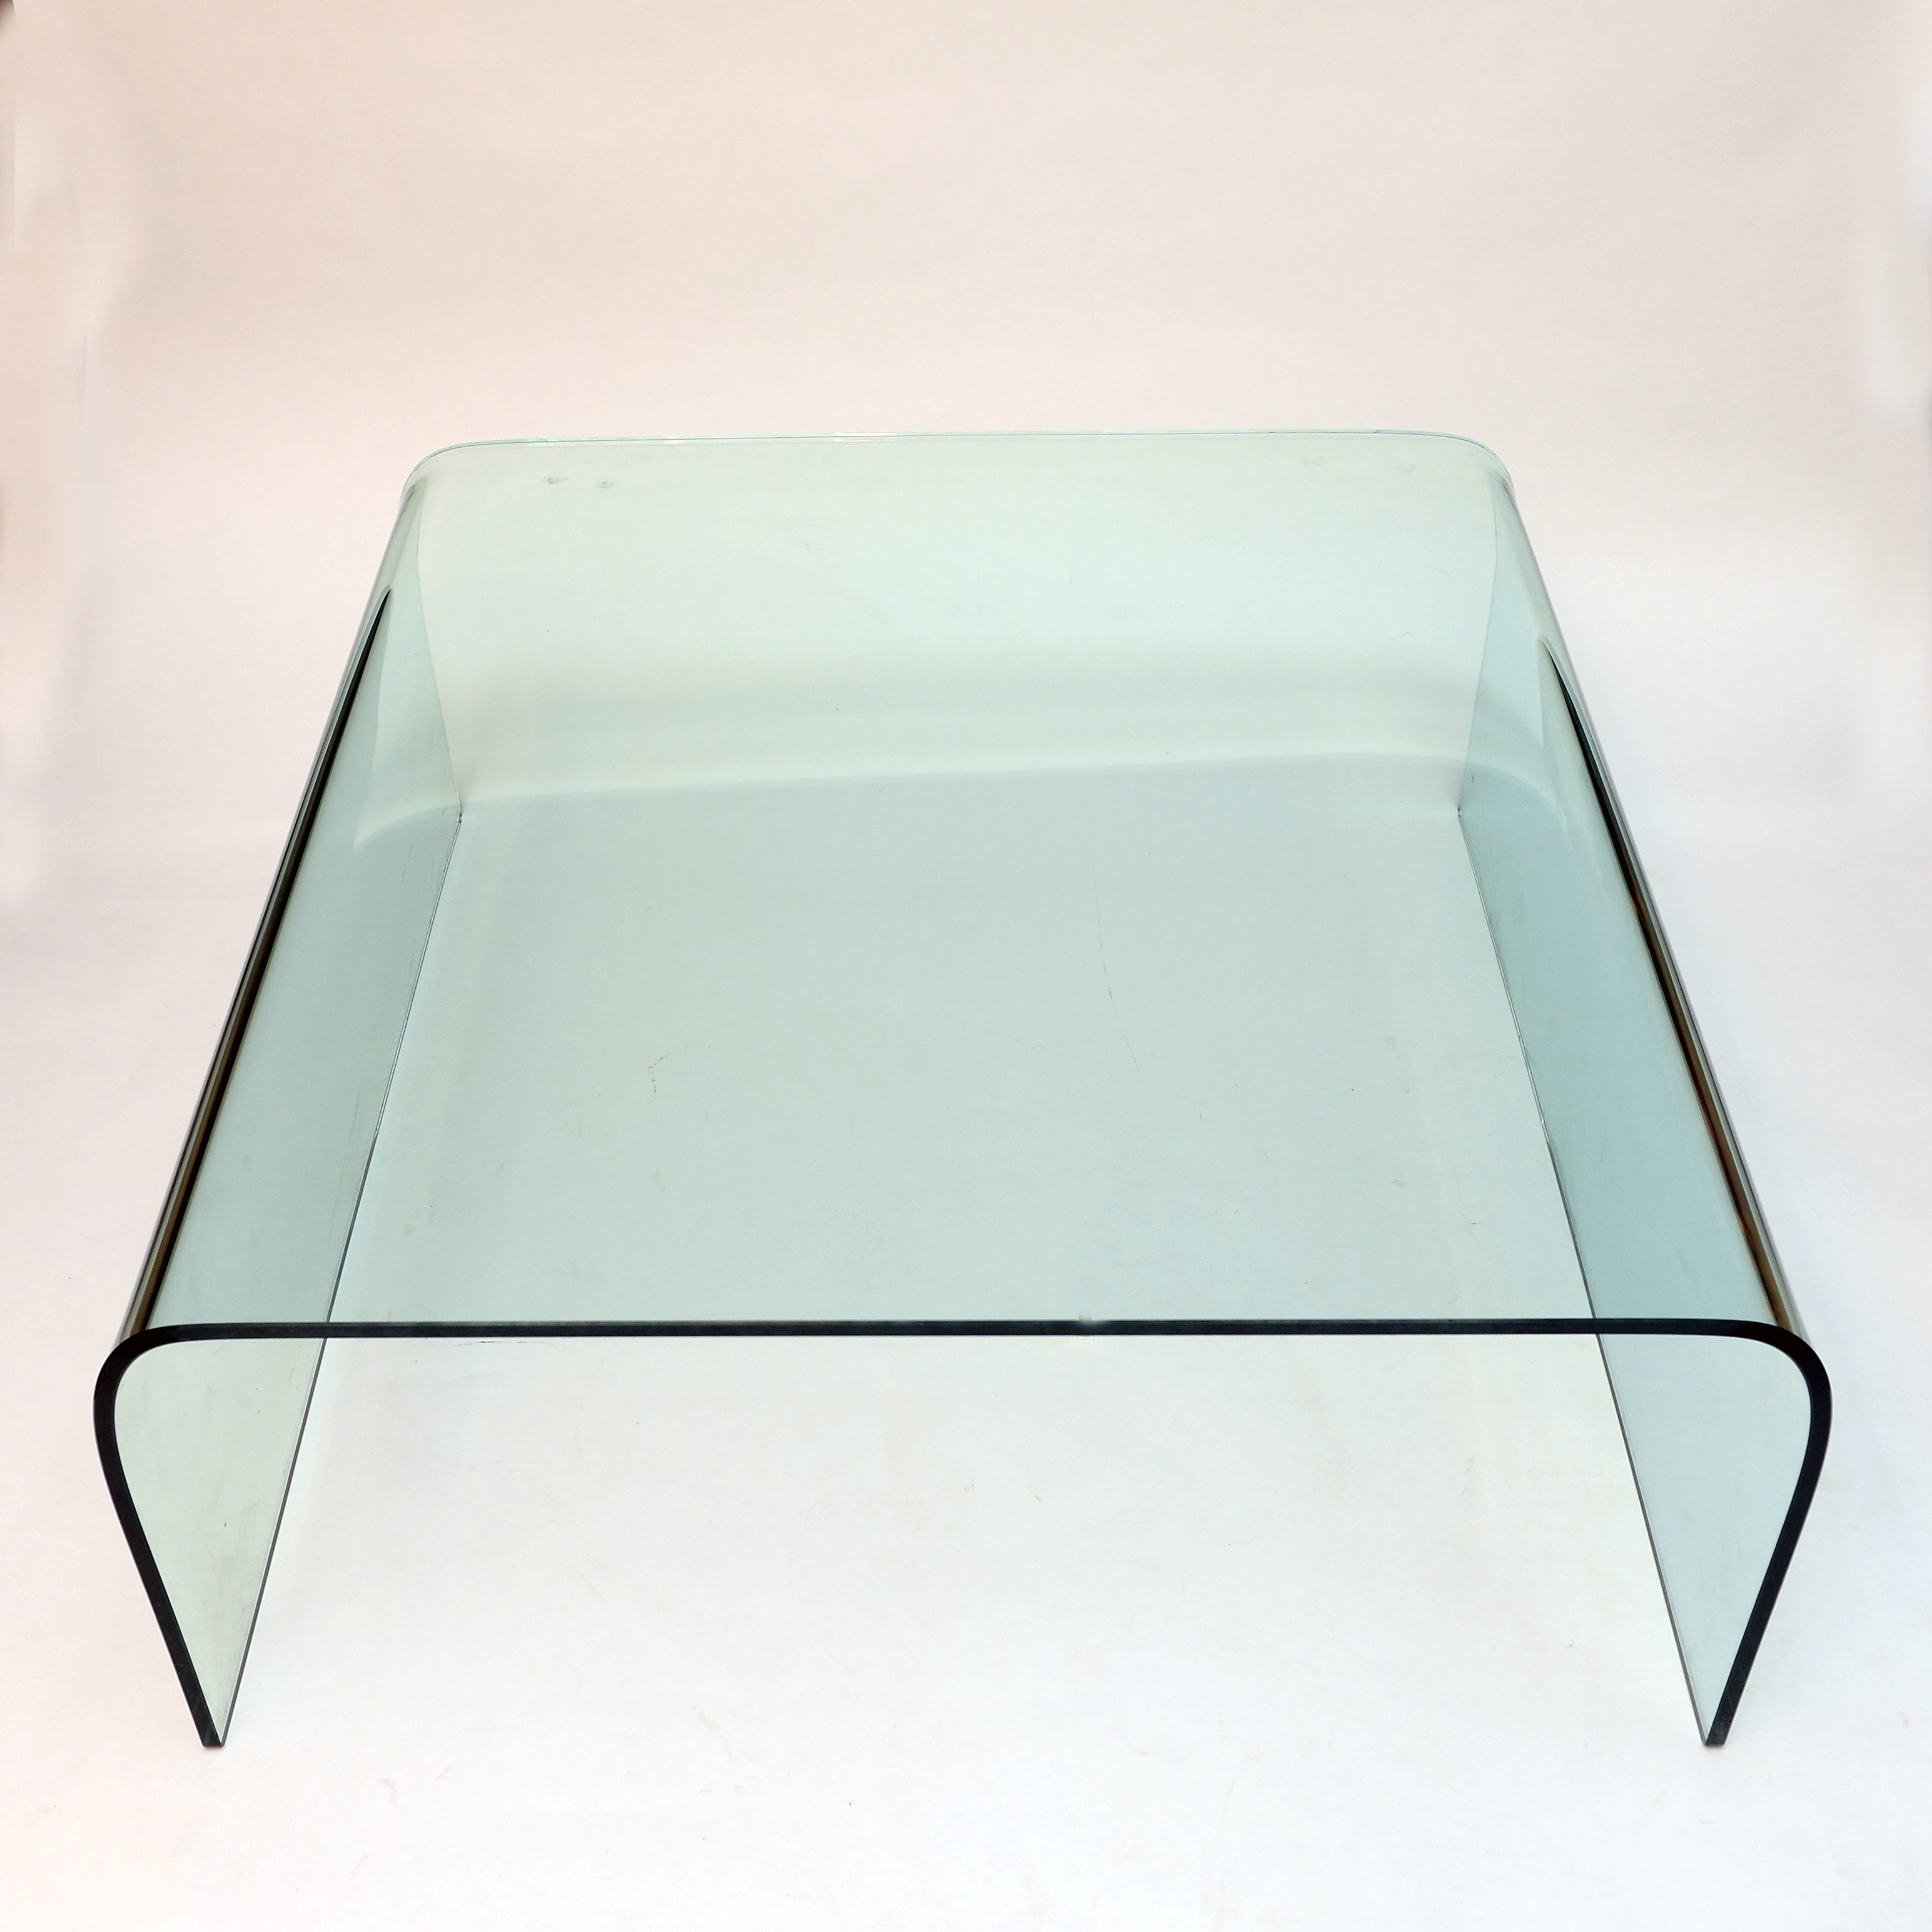 - Vintage Glass Coffee Table By Fiam, Italy 1980s #84996